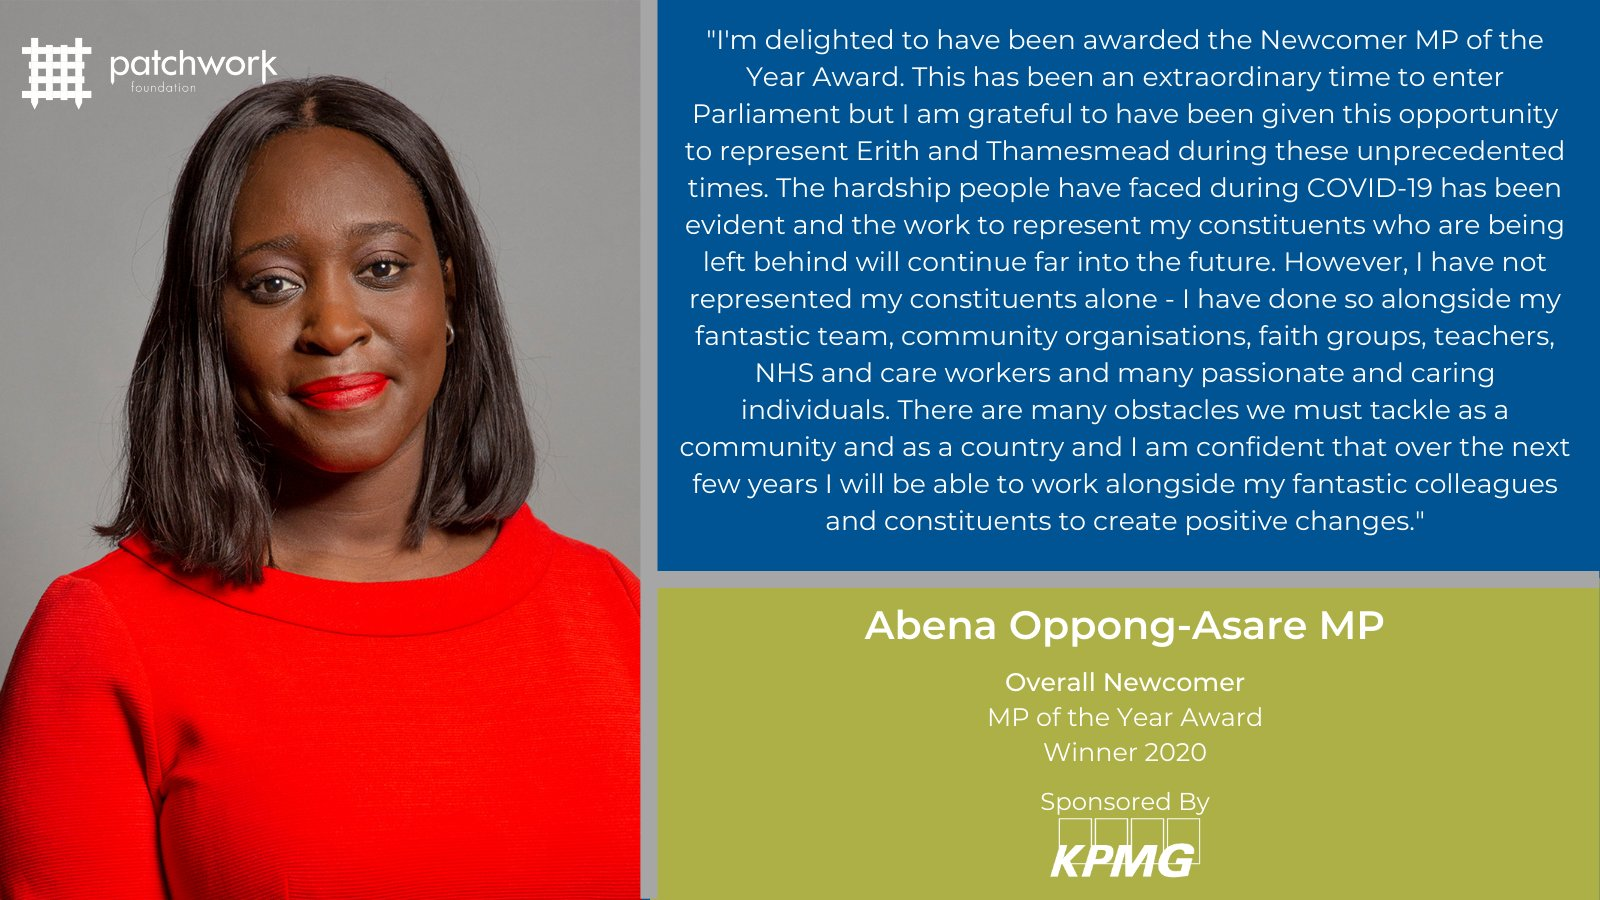 Image announcing Abena as Newcomer MP of the Year